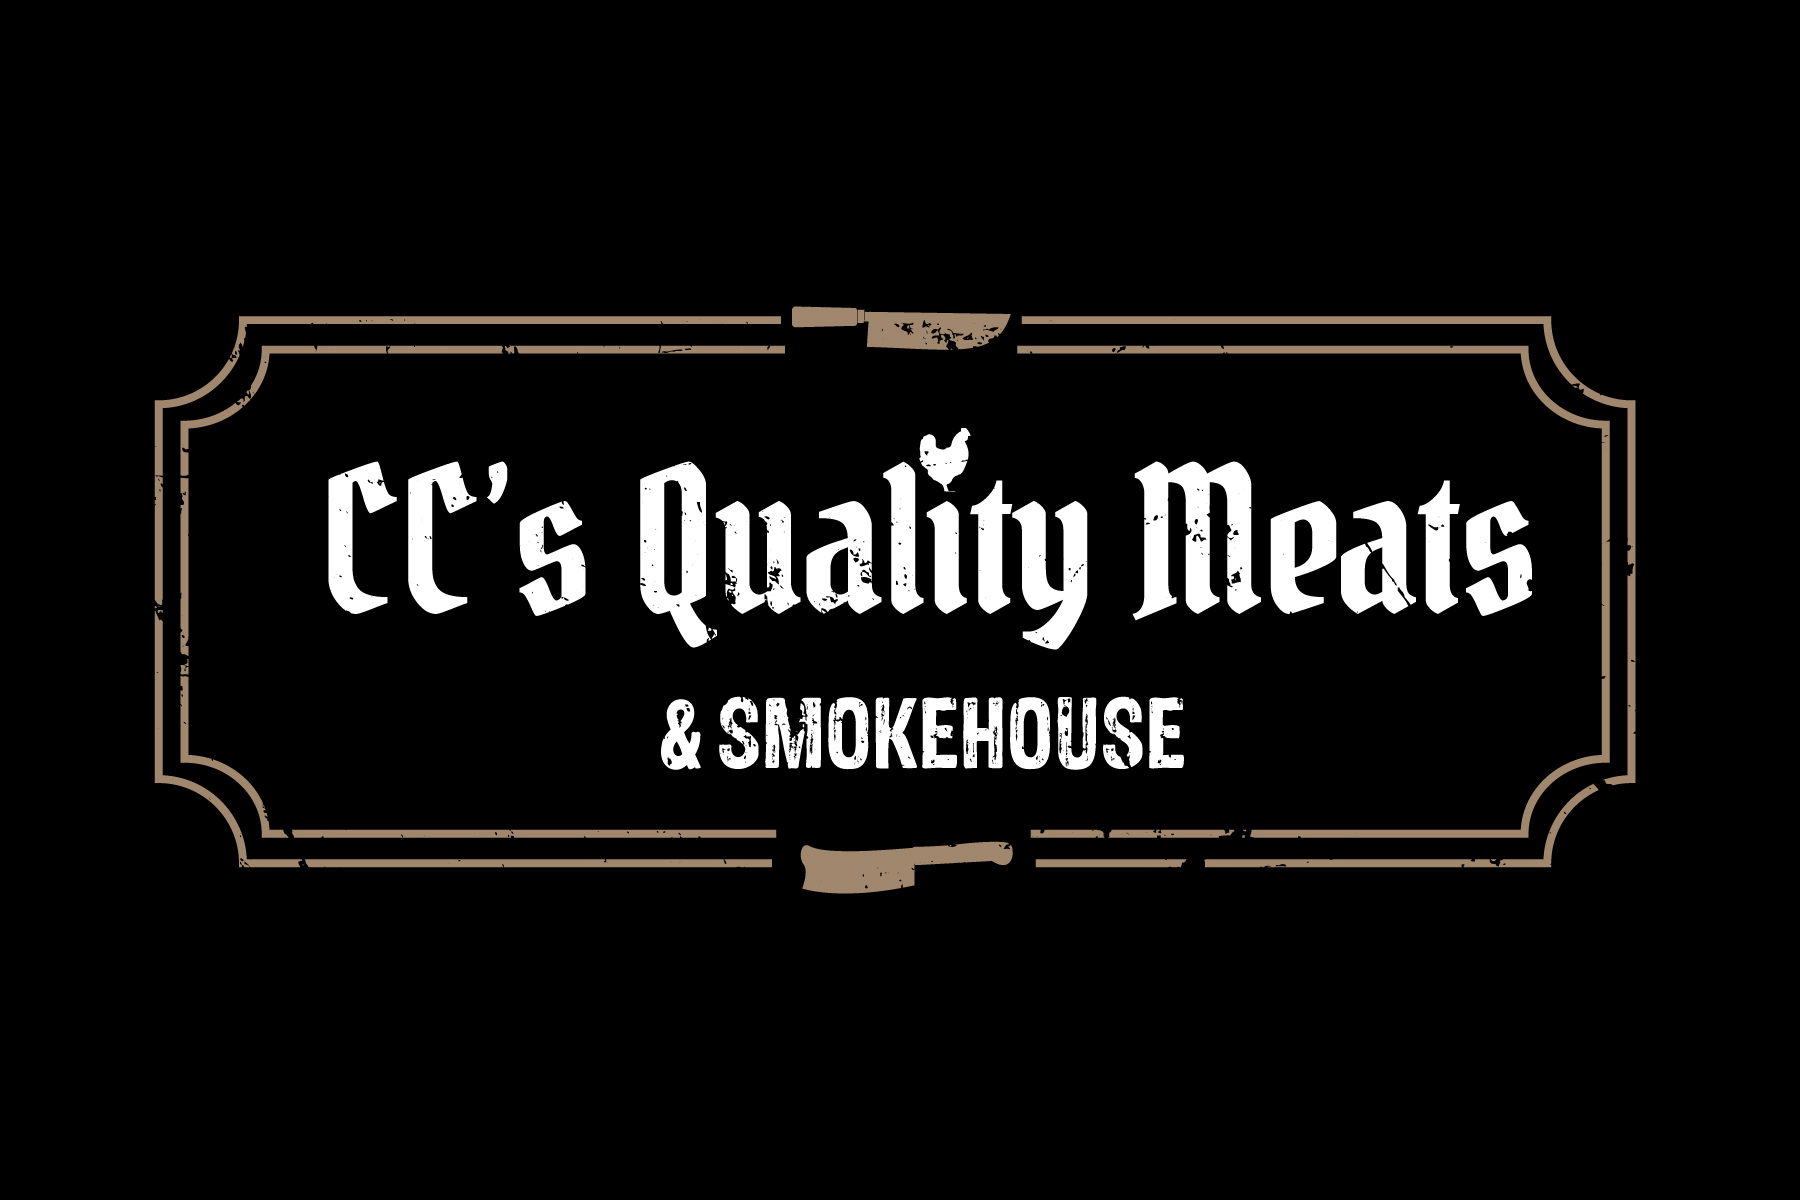 CC's Quality Meats and Smokehouse